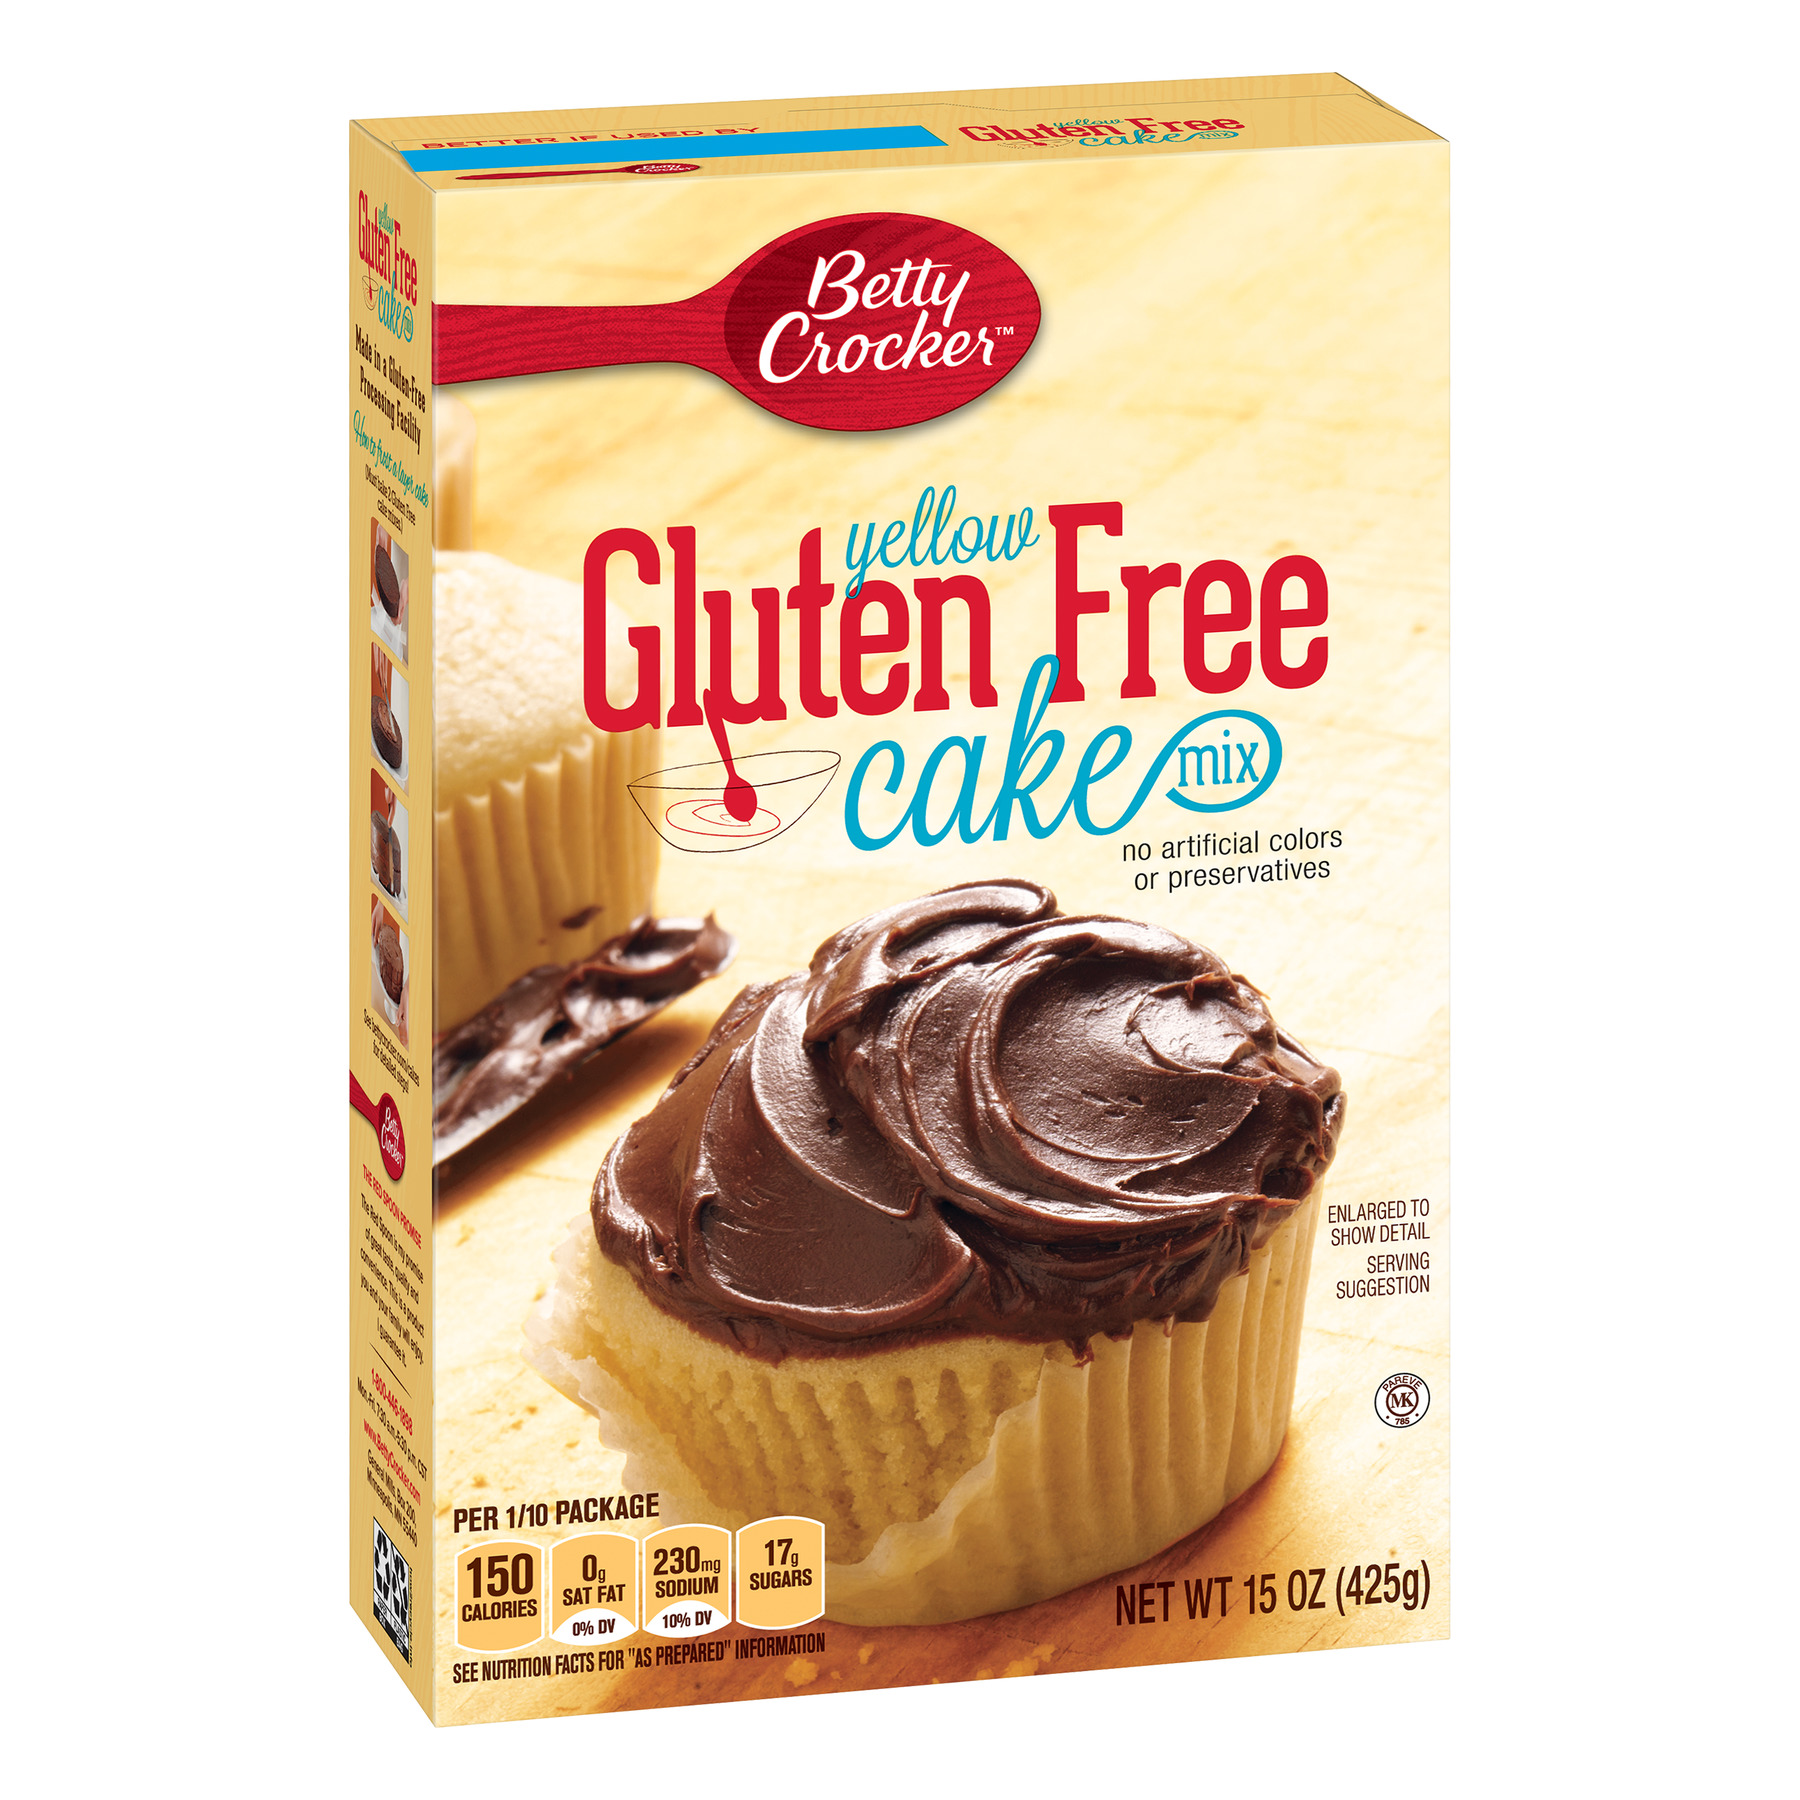 Betty Crocker Gluten Free Yellow Cake Mix, 15 Oz